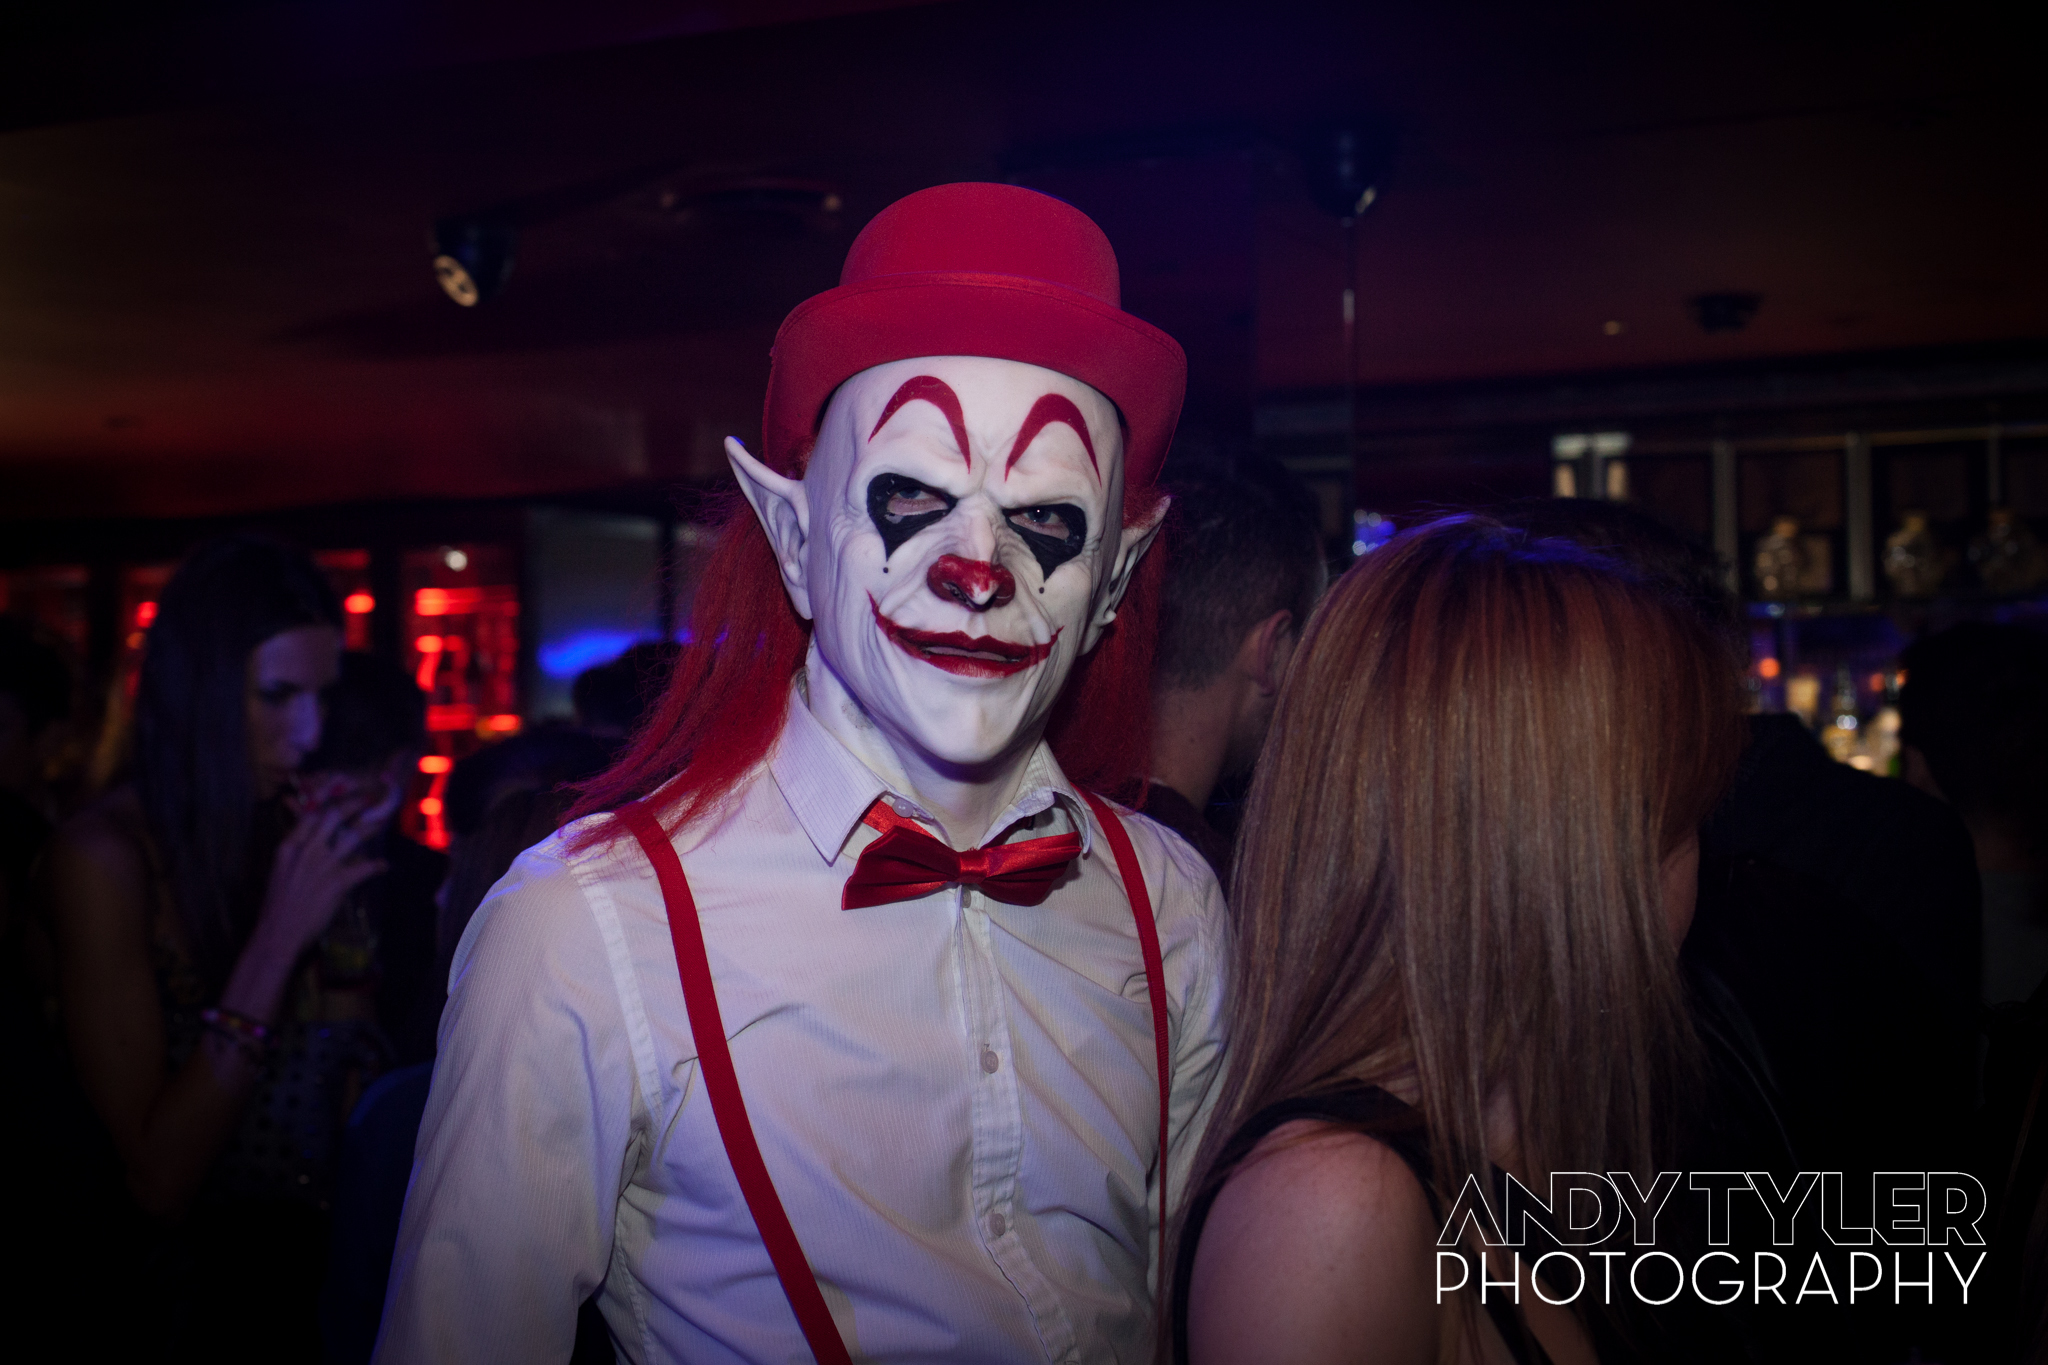 Tinder UK Launch Party-2089.jpg